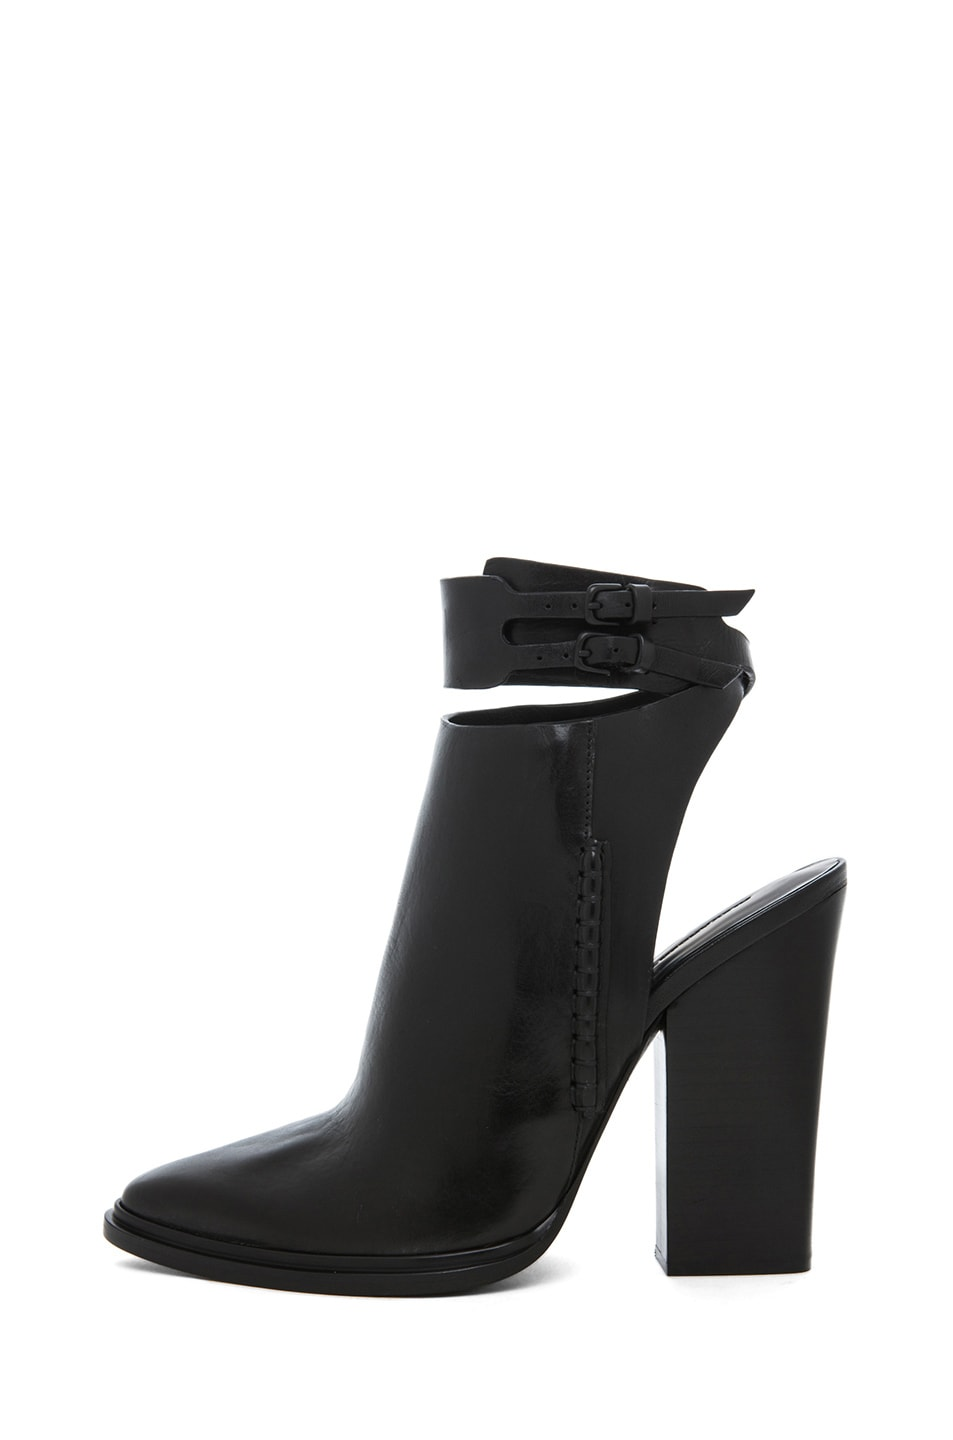 Image 1 of Alexander Wang Dasha Bootie in Black